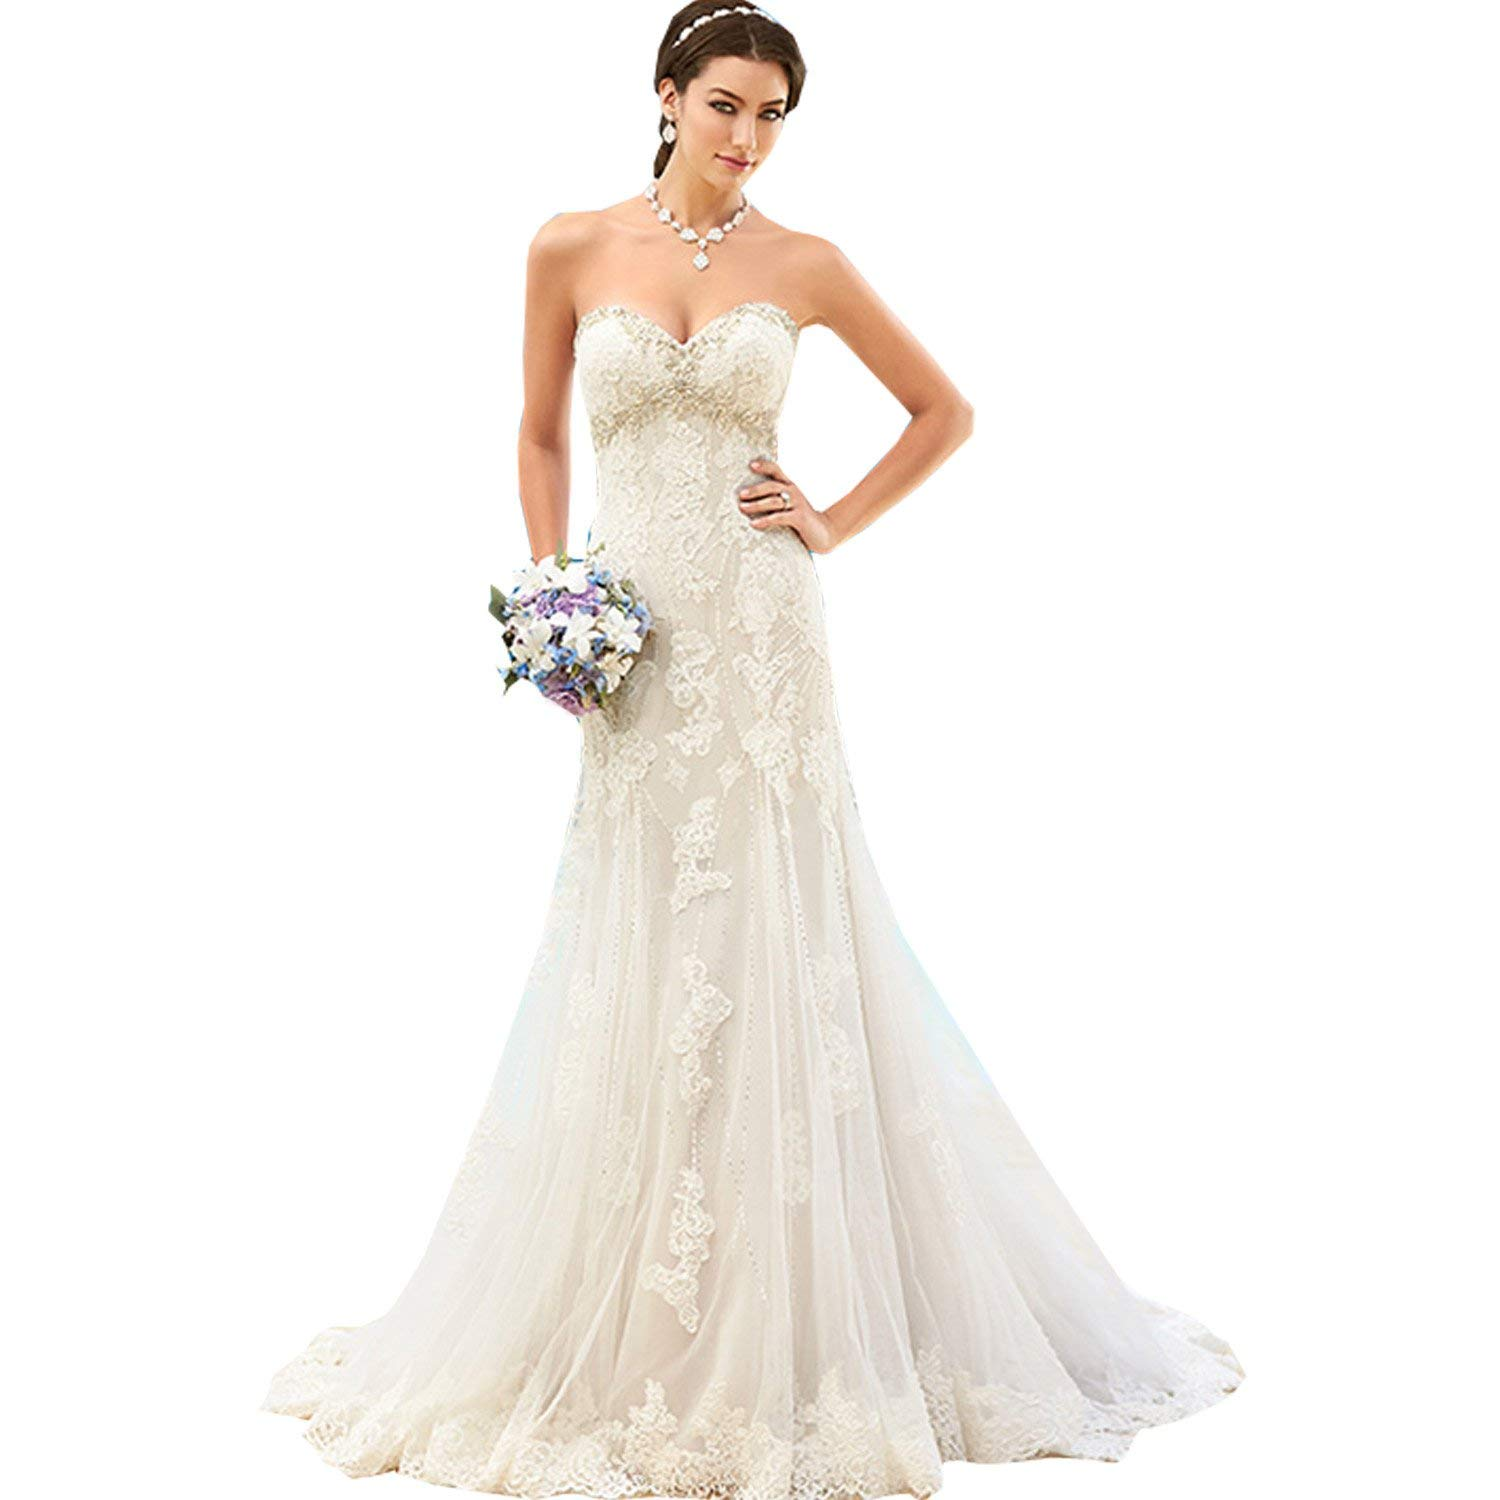 9ad781534a Get Quotations · Fenghuavip Elegant Sweetheart Ivory Tulle with Train Brides  Wedding Gowns